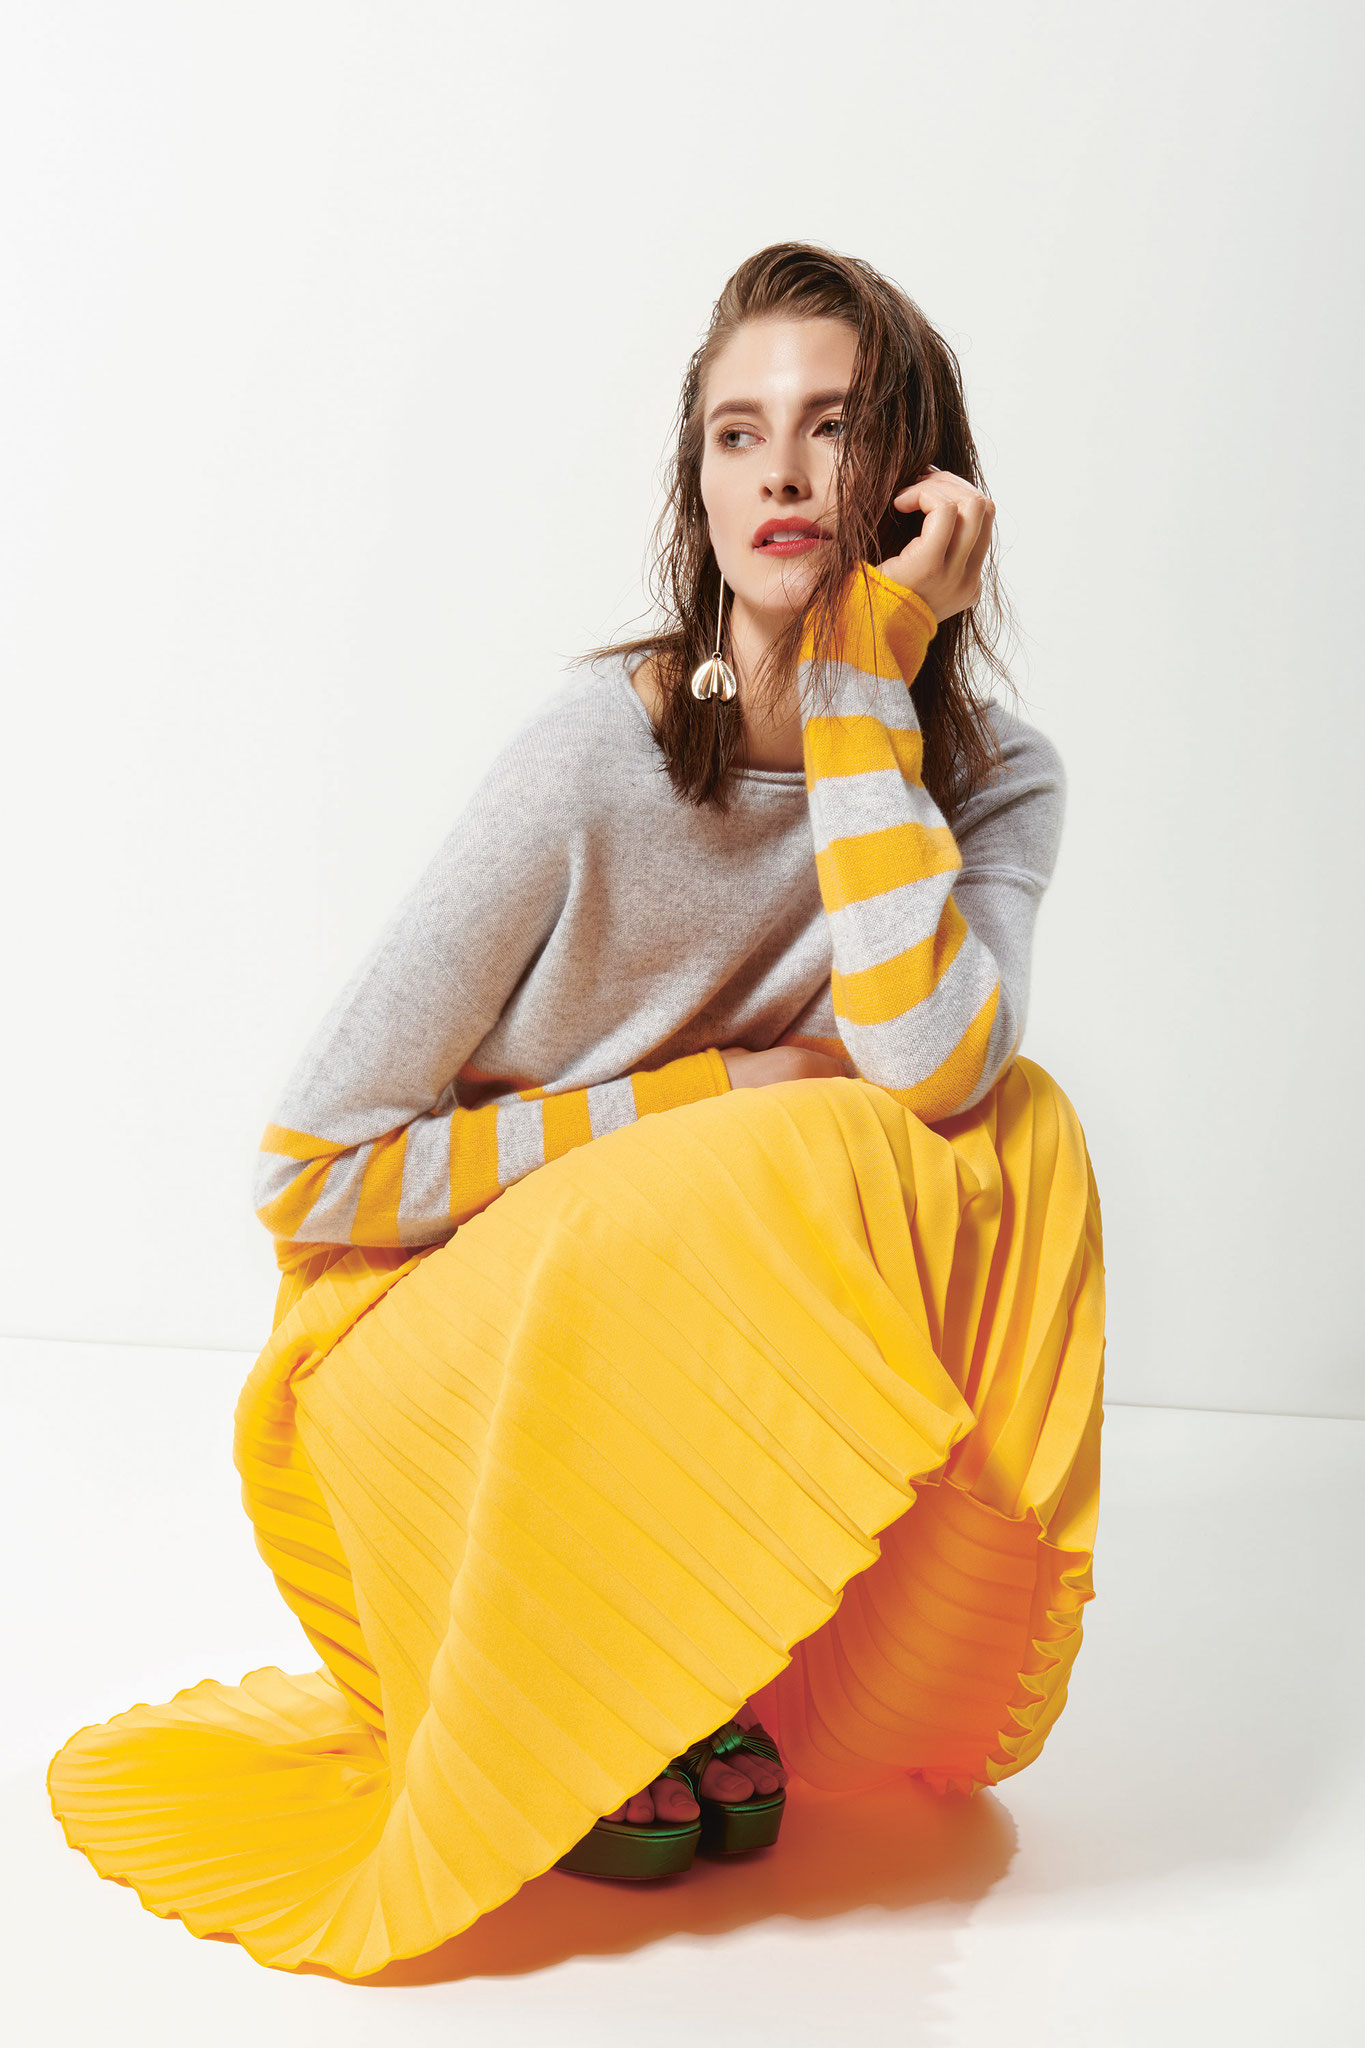 ESISTO - Cashmere - Collection F/S 2019 - Strick Pullover mit Streifen